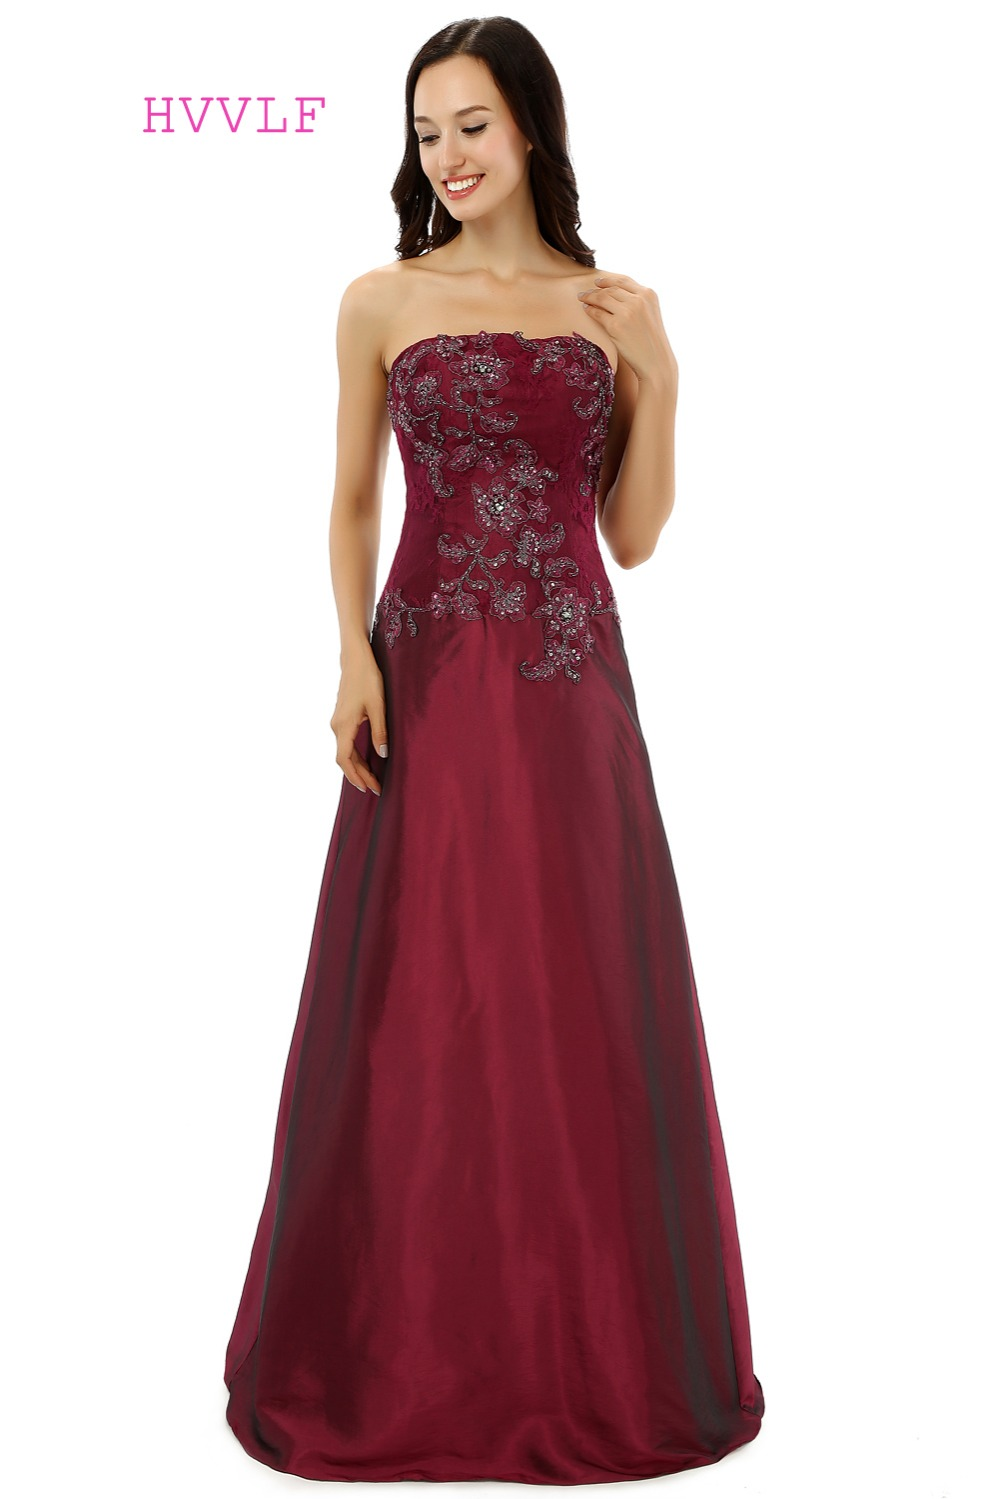 Burgundy 2019 Mother Of The Bride Dresses A-line Strapless Taffeta Lace Beaded Formal Groom Long Mother Dresses For Wedding